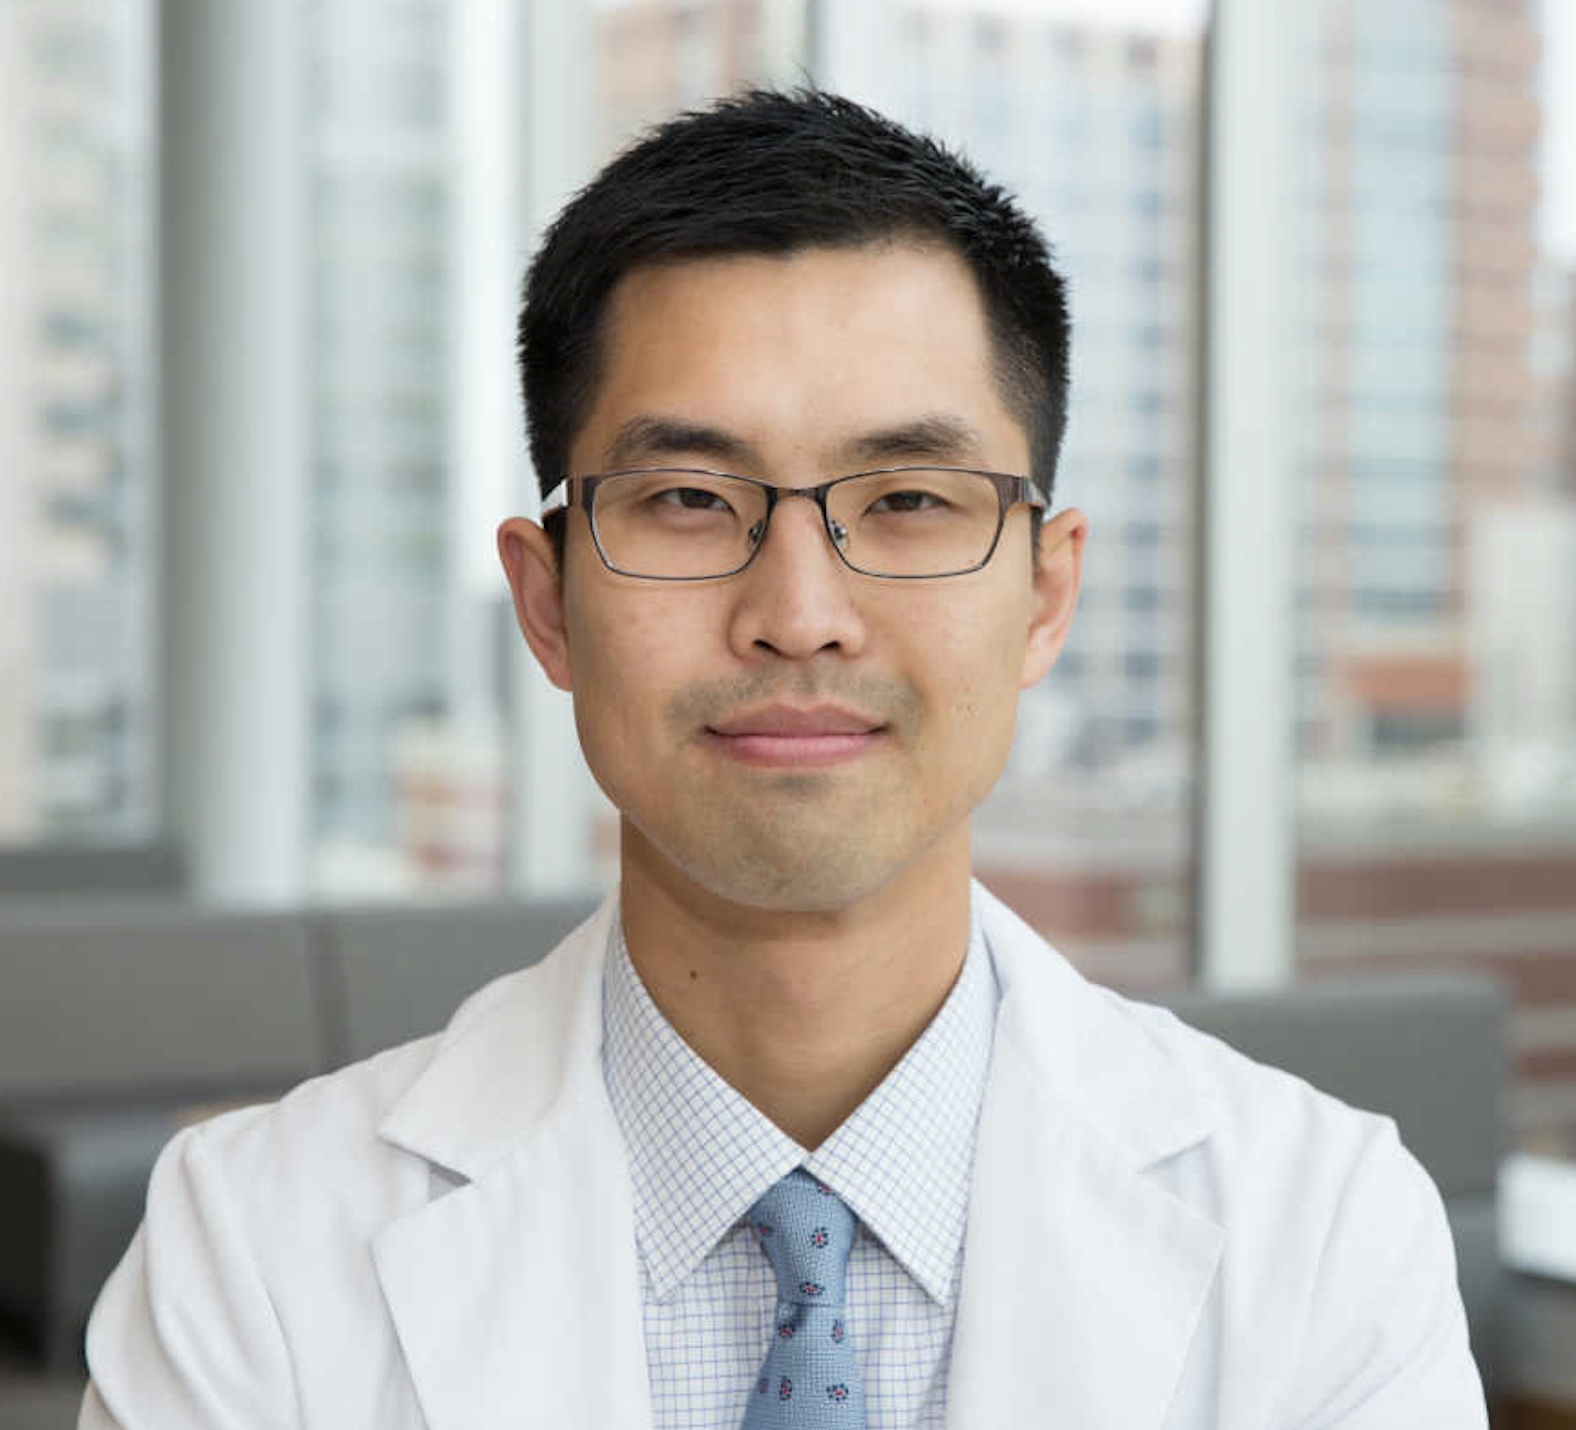 Jason Han, M.D., University of Pennsylvania Resident in Cardiothoracic Surgery